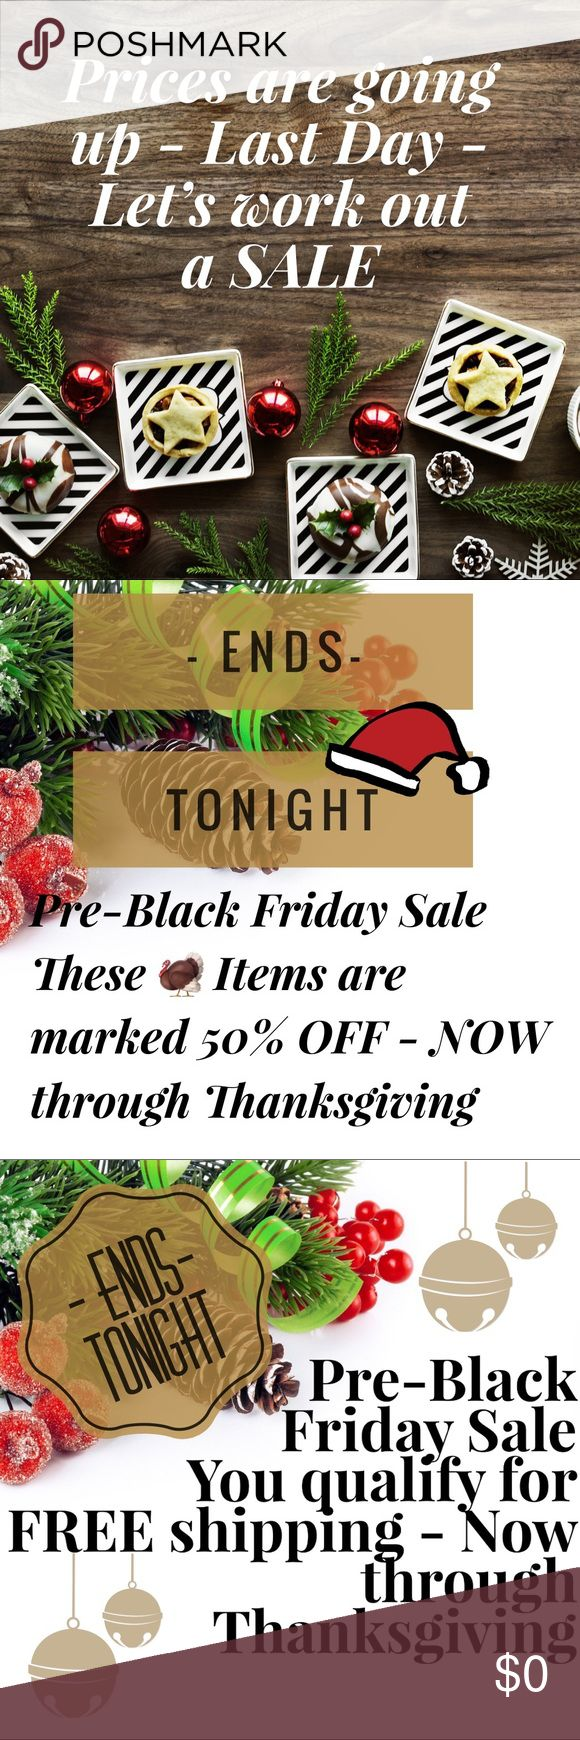 SALE - Extended *50 % OFF ‼️ All  Items Tagged with a 🦃(price already marked 50% off-FIRM) *FREE Shipping on all orders over $50 (includes all closet items)AND *Buy 1 item full price get 2nd item 50% OFF (pay full price for higher priced item excludes 🦃 marked items) Now through Friday . ALWAYS same day or next day delivery,free gifts,smoke free home,clothing always dry cleaned(except jeans and leggings)💖 quality is important to me; I would never sell anything I wouldn't wear myself ,Have…